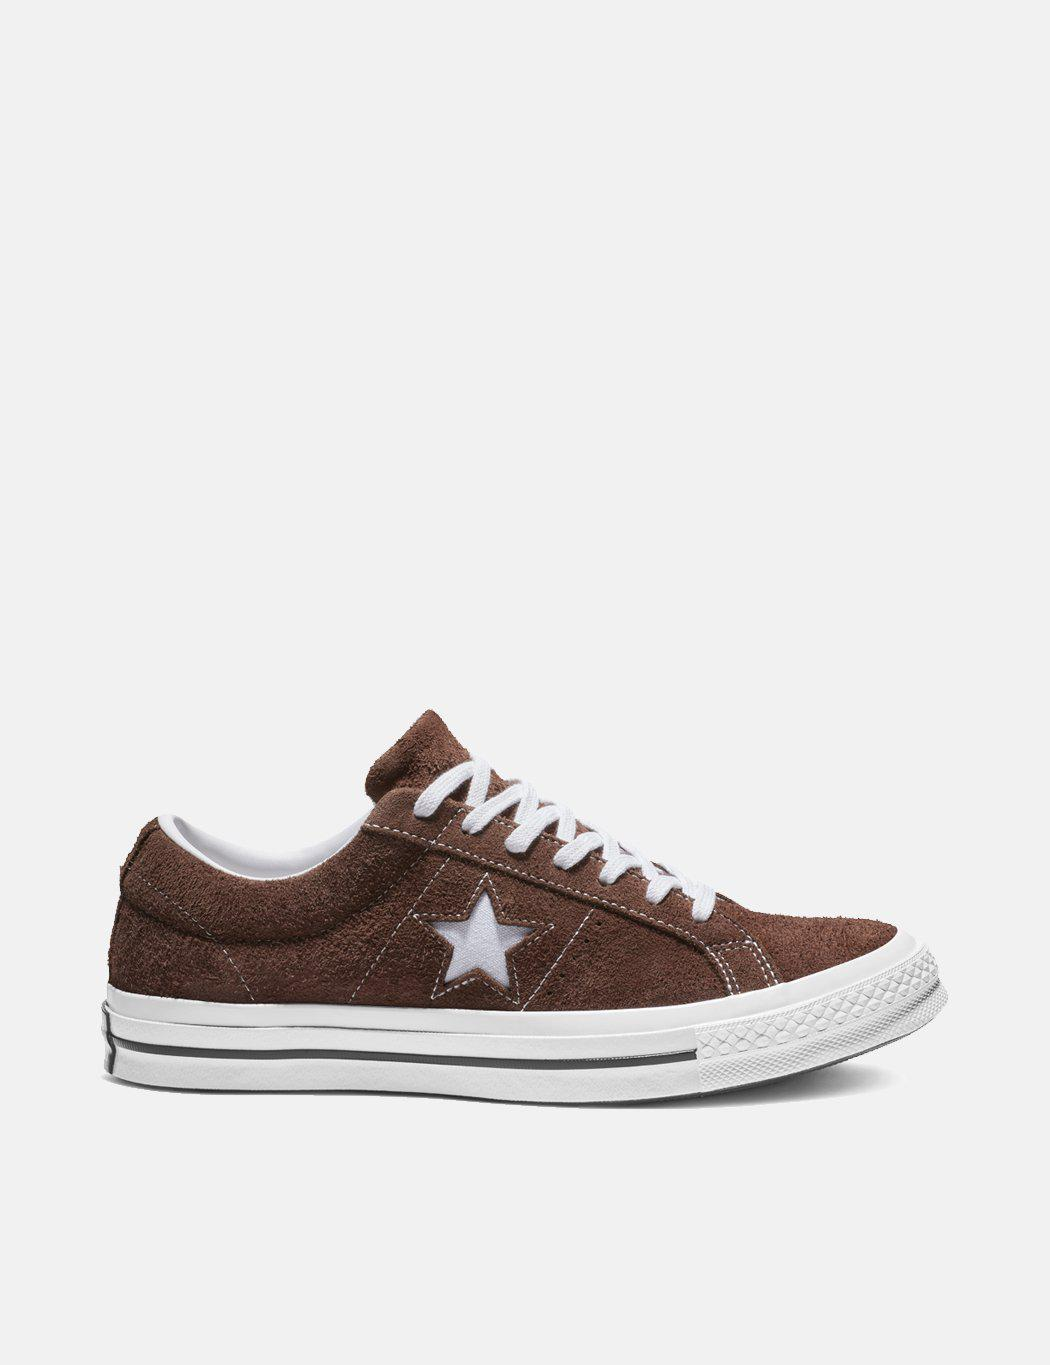 5881112f1149 Converse One Star Ox Low Suede (162573c) in Brown for Men - Save 62 ...